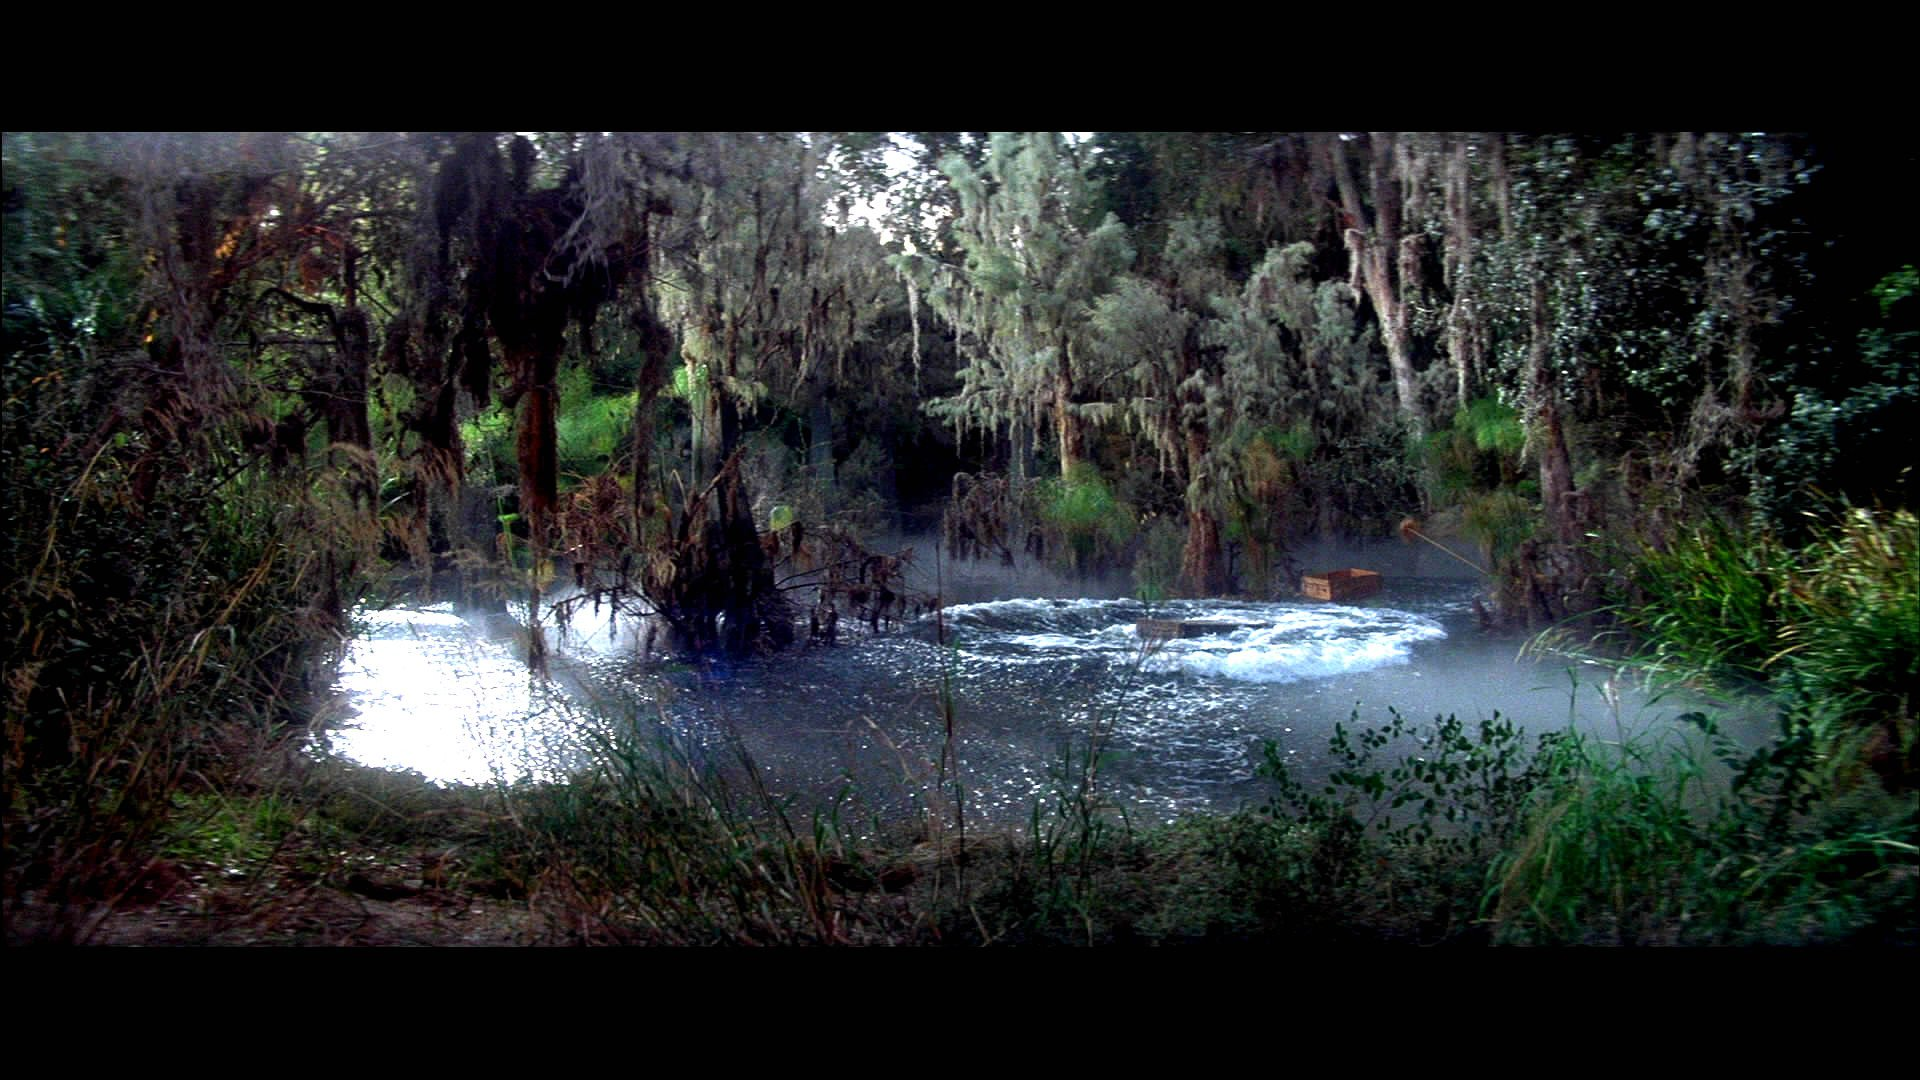 Trippy Animated Wallpapers Monster Squad Action Comedy Fantasy Horror Dark Lake River